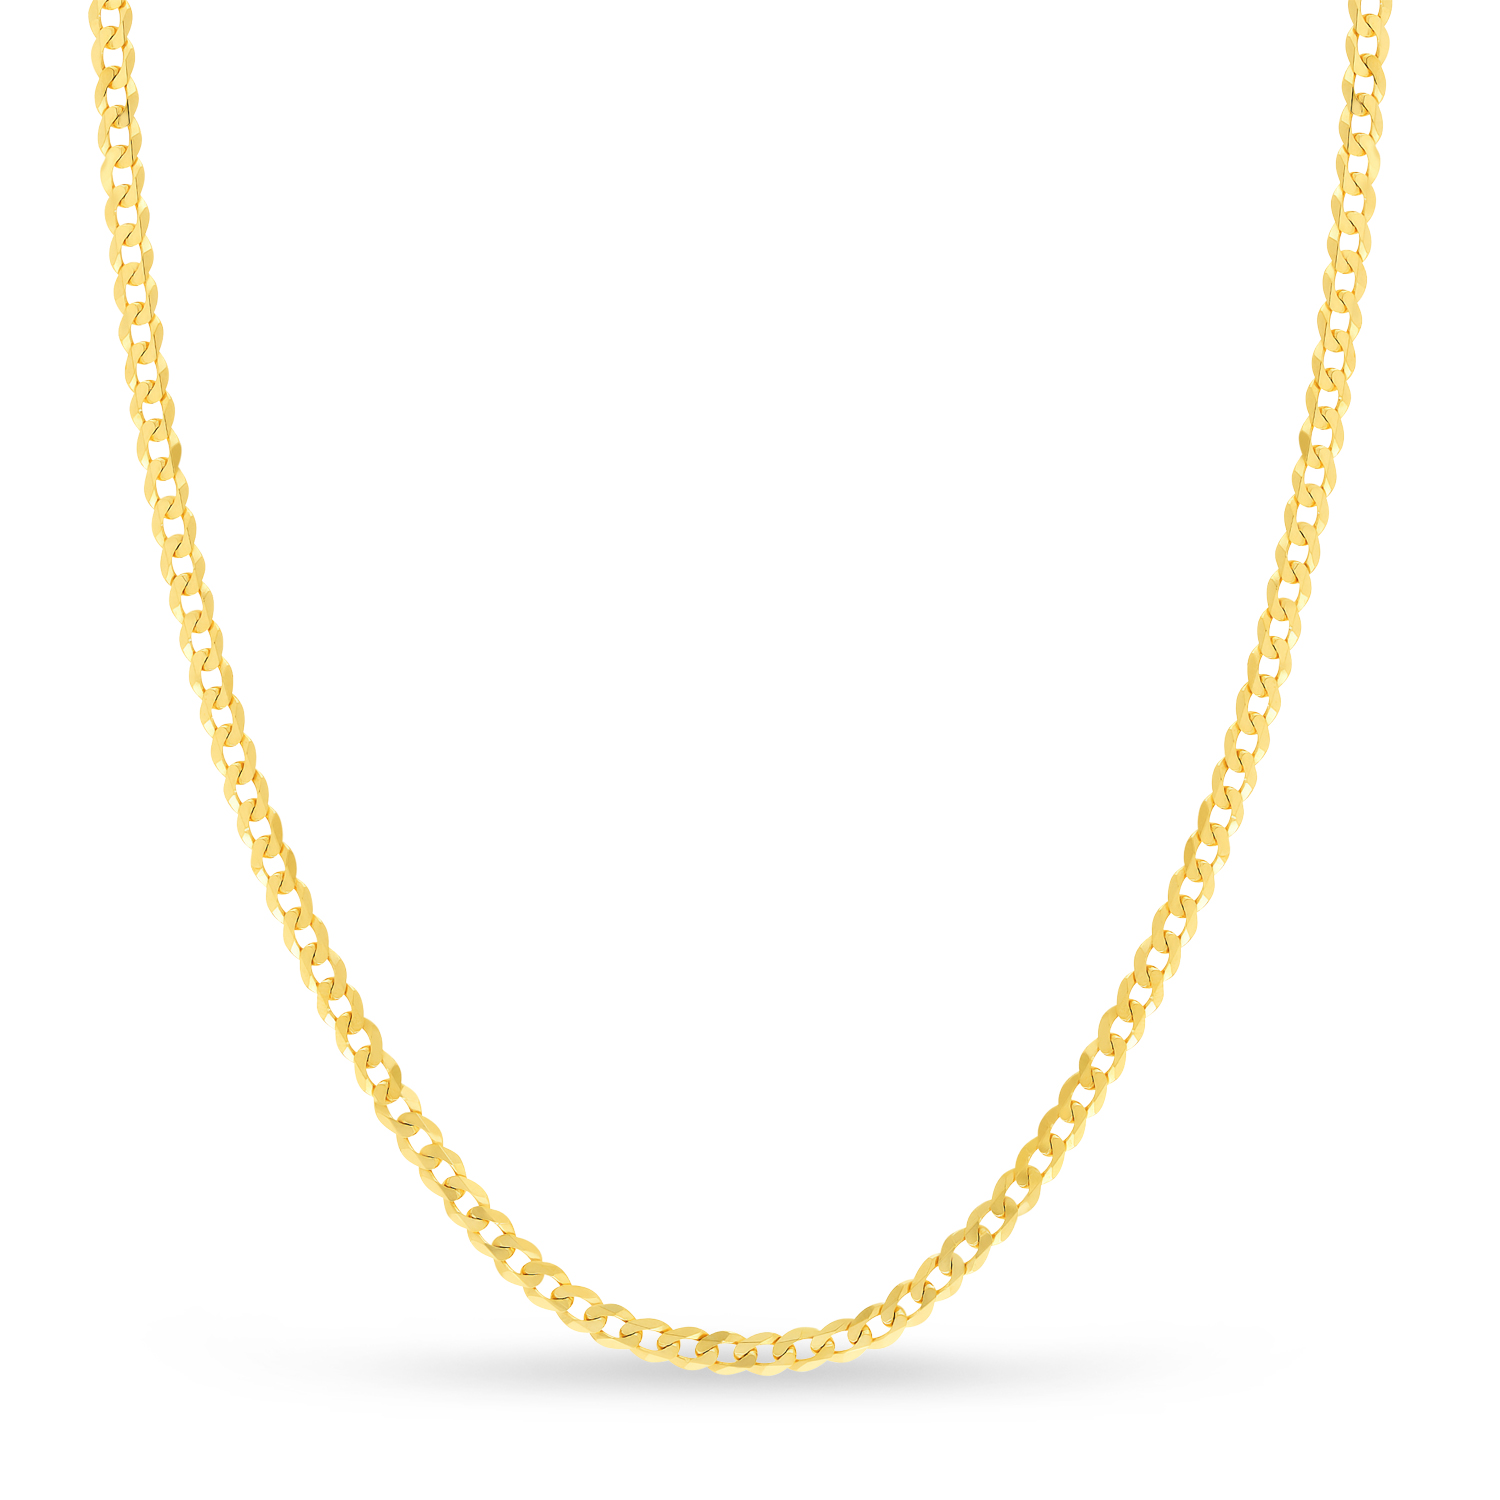 Curb Chain Necklace With Lobster Lock 14k Yellow Gold